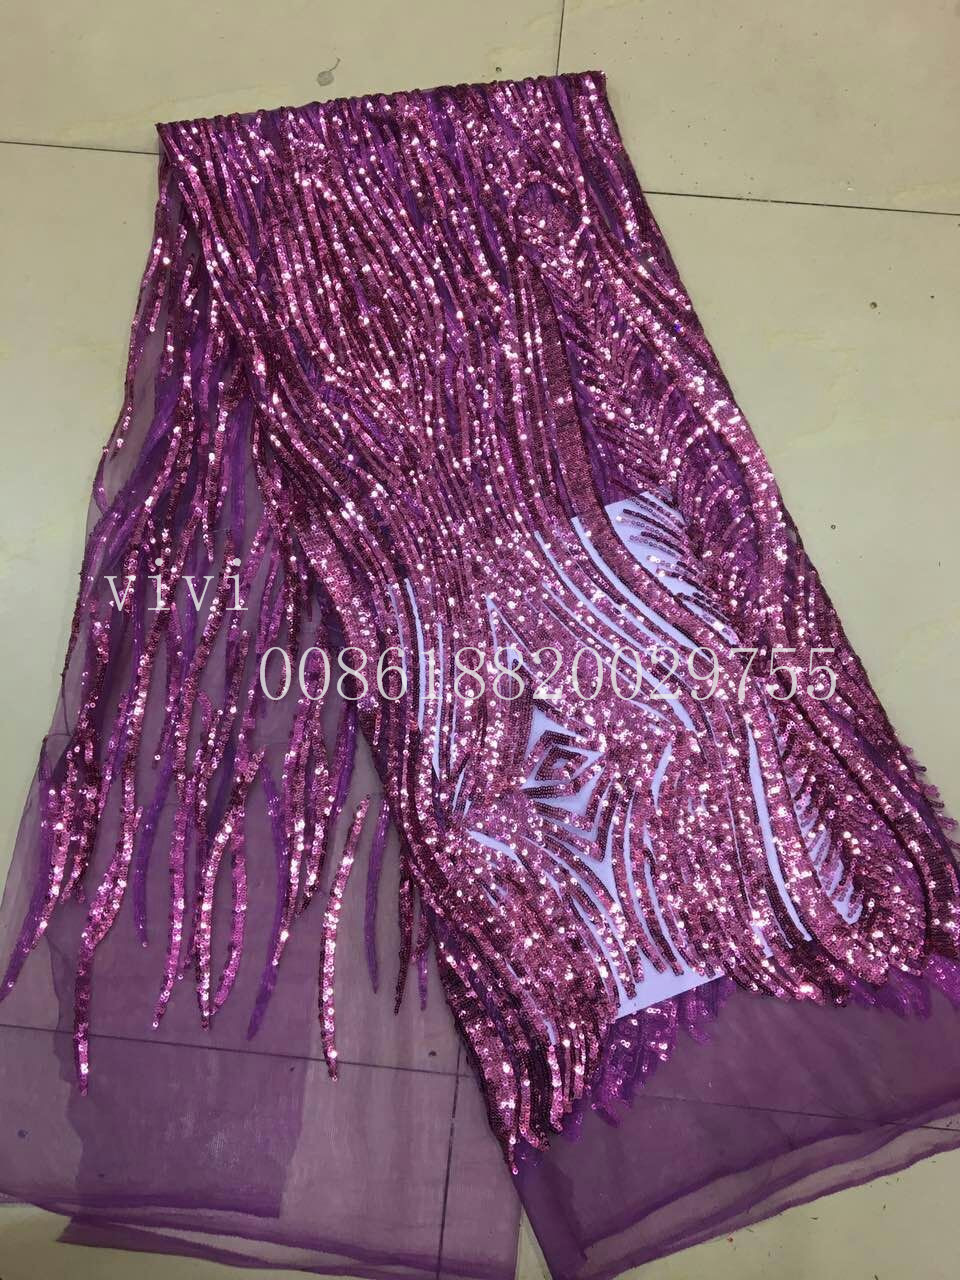 bin011 # purple luxury sequin net mesh tulle embroidery lace fabric for party/evening dress/sawing